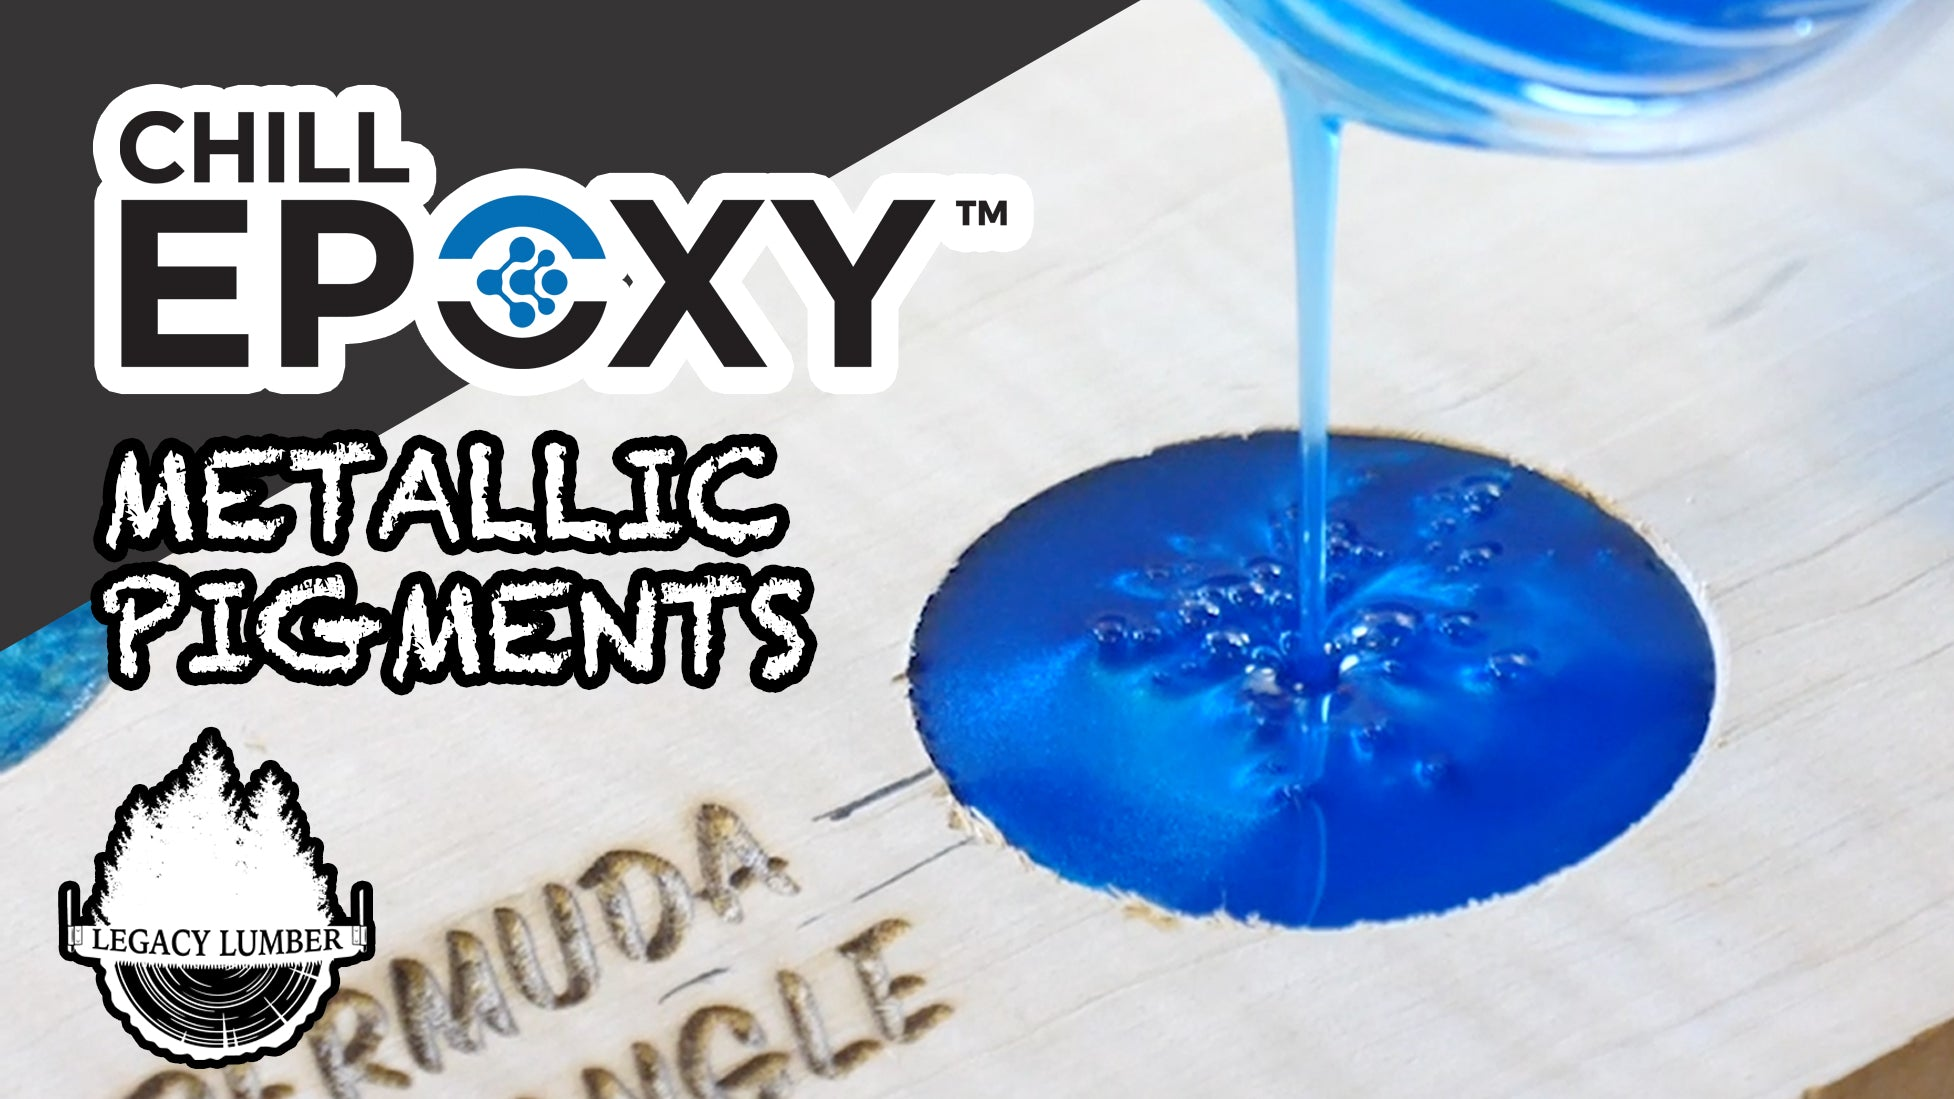 Check out the Chill Epoxy Metallic Pigments... VIDEO!